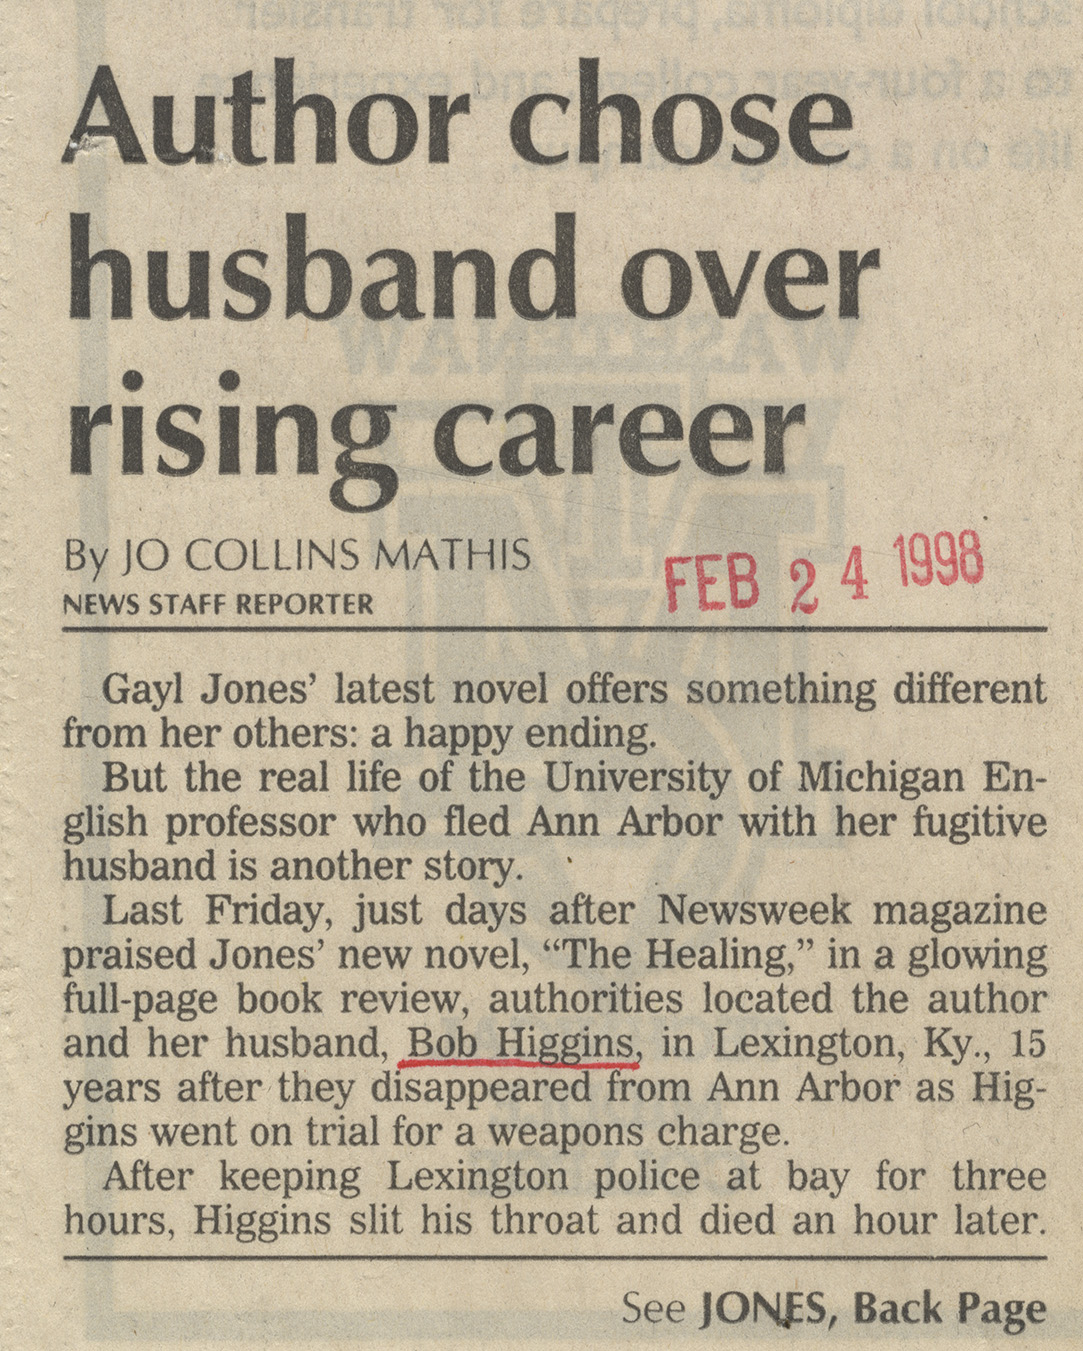 Author Chose Husband Over Rising Career image